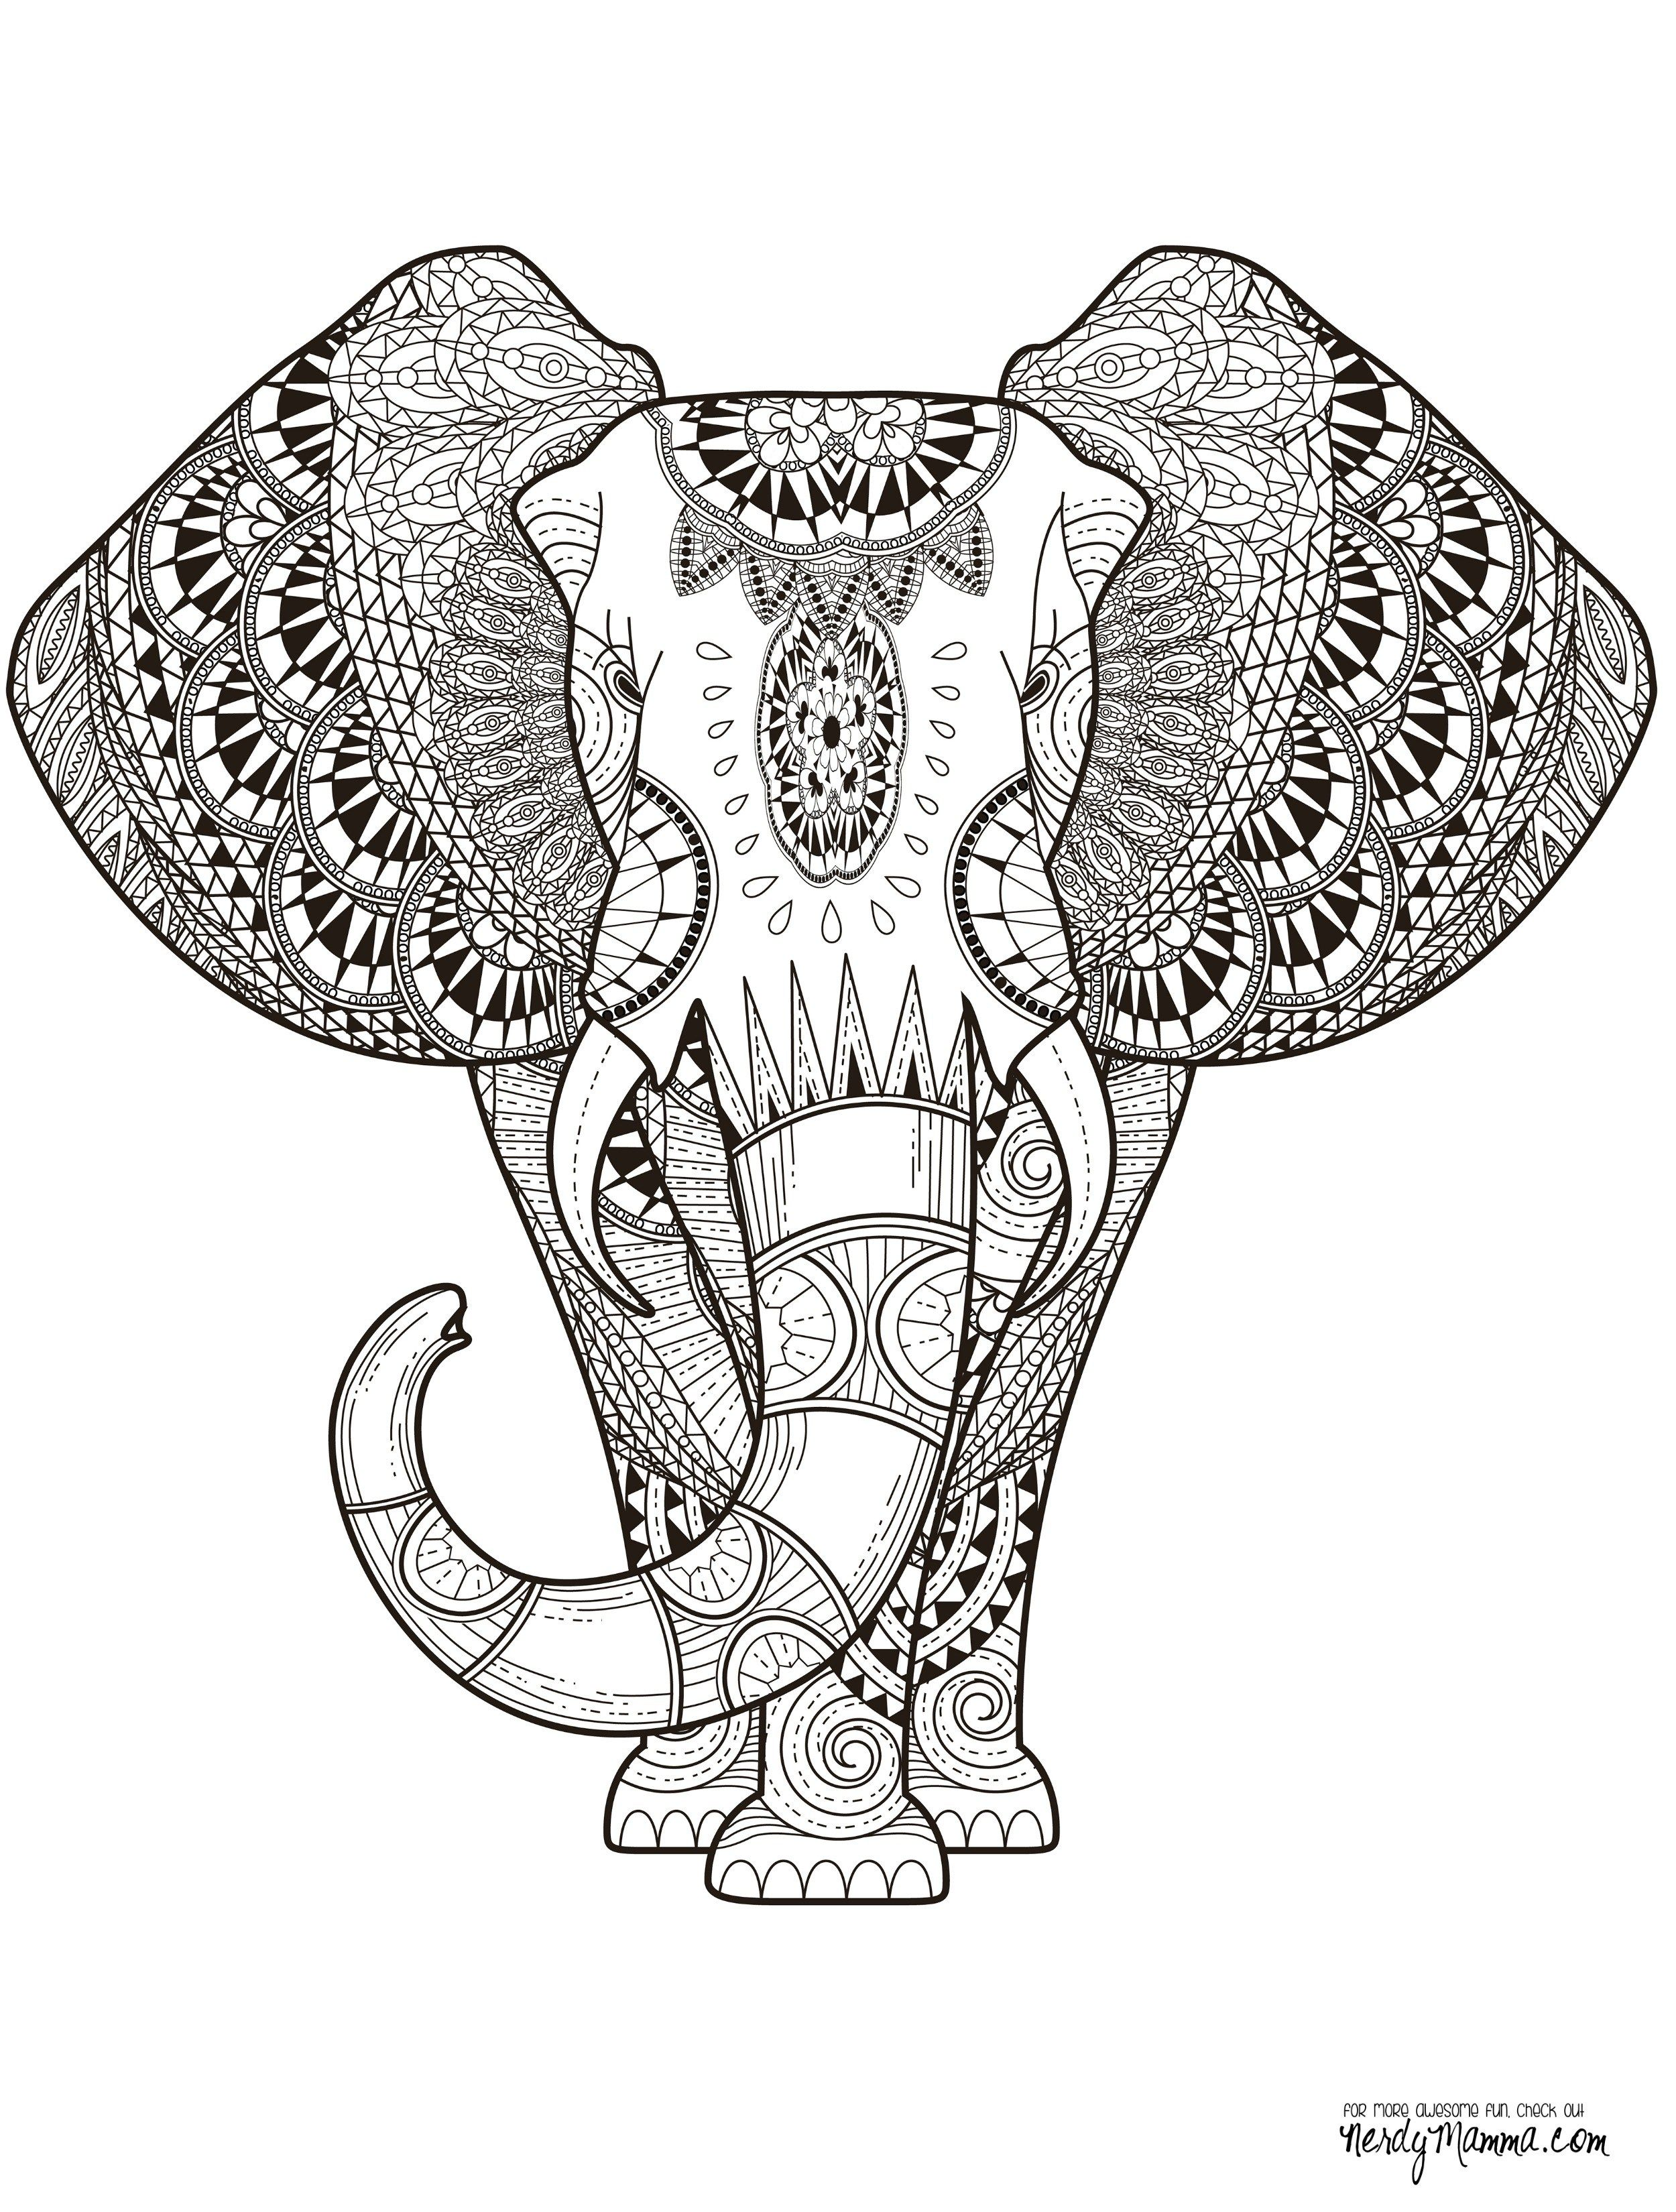 Zentangle Elefant Vorlage Elephant Abstract Doodle Zentangle Paisley Coloring Pages